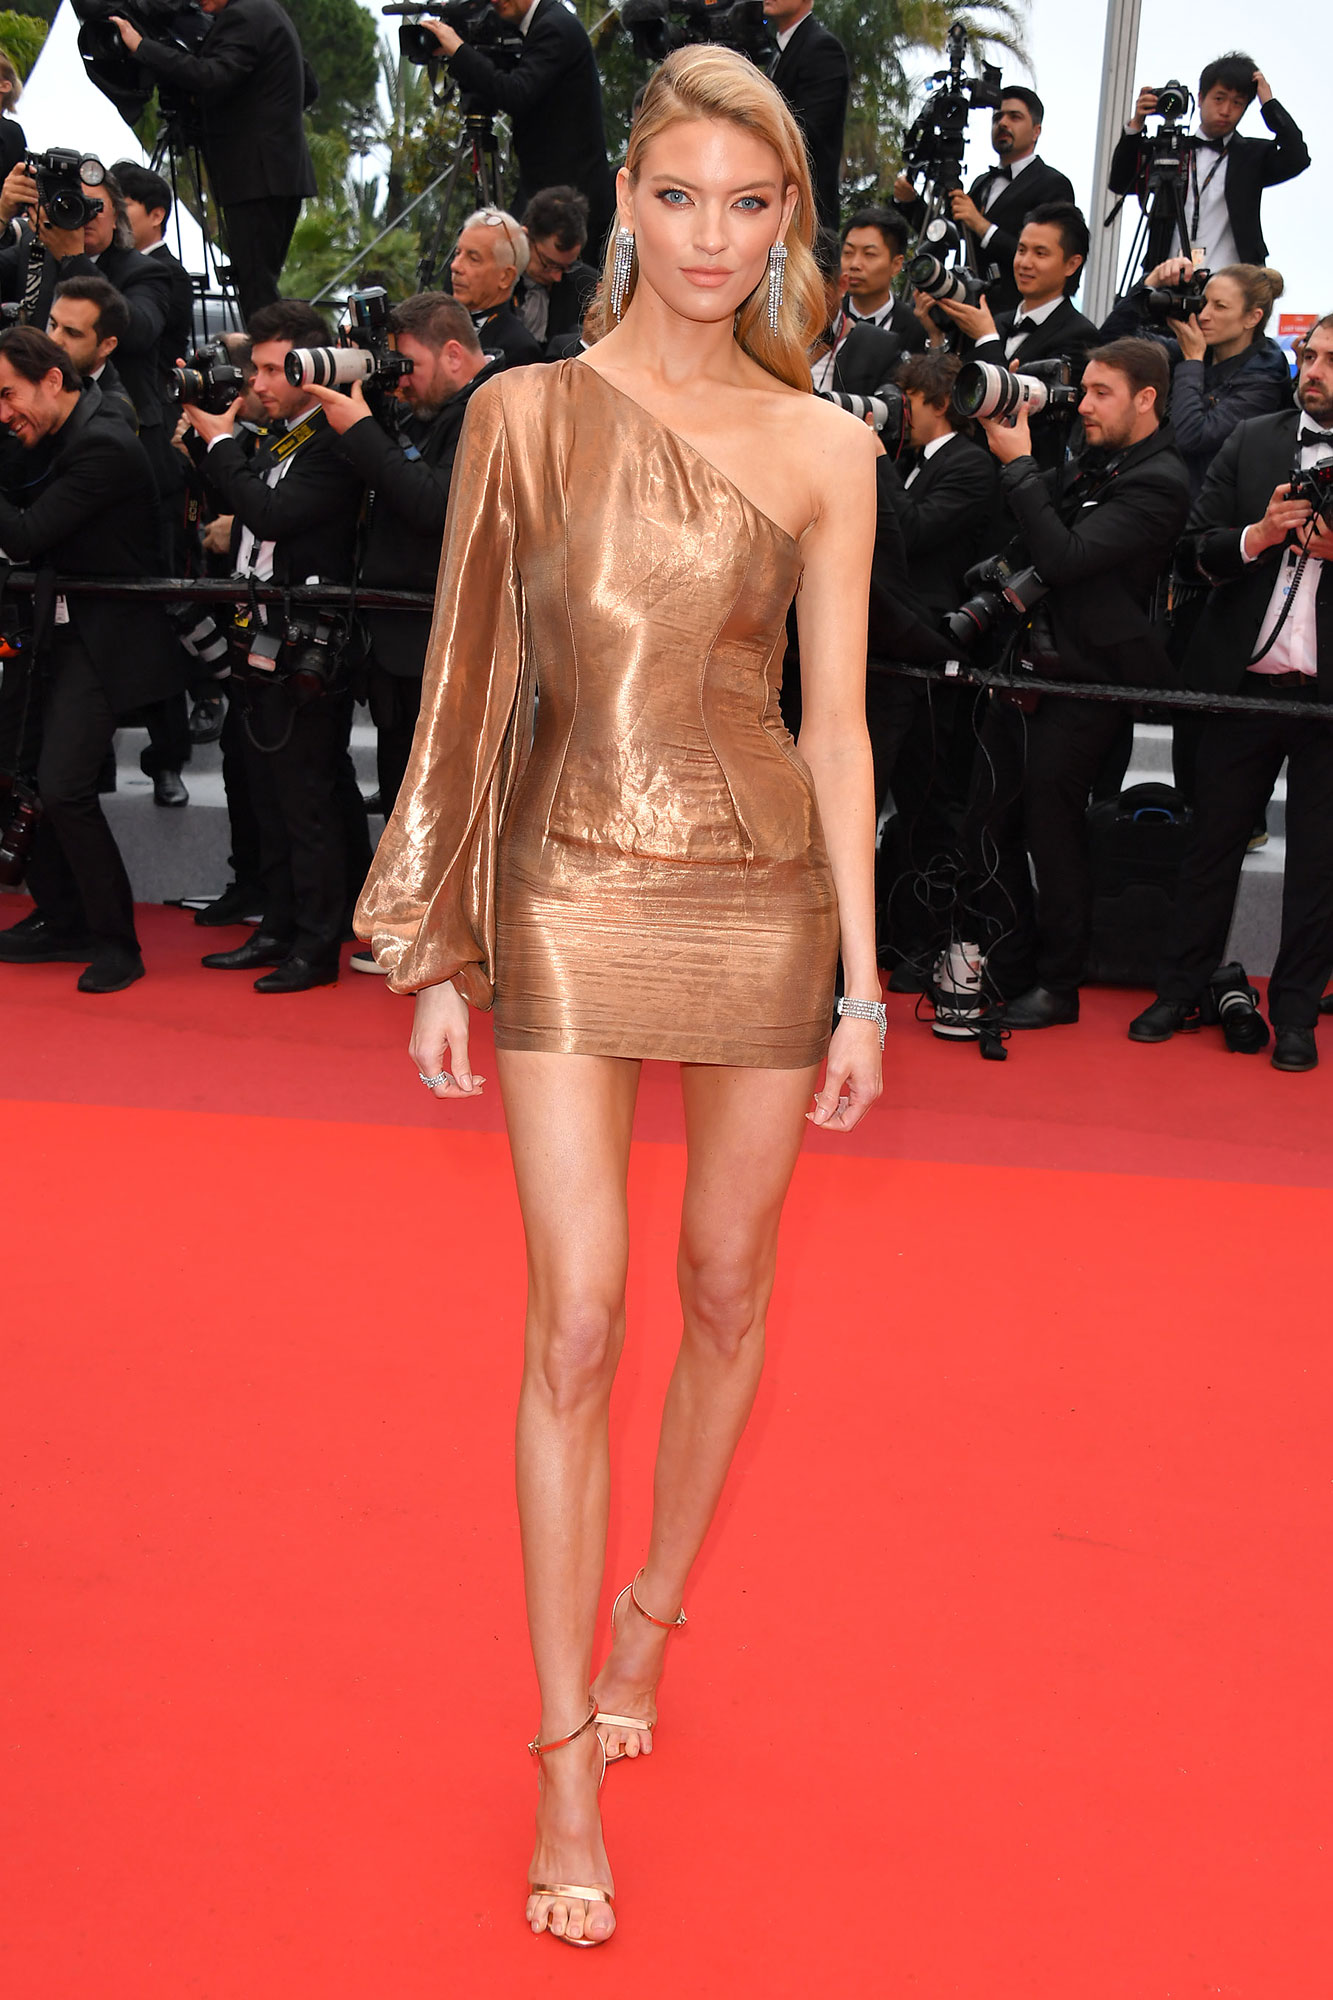 Martha Hunt Stepping Out in Style at Cannes Film Festival - At the Les Plus Belles Annees D'Une Vie screening on Saturday, May 18, the model was a bronze goddess in her Stella McCartney mini that showed off her mile-long legs.